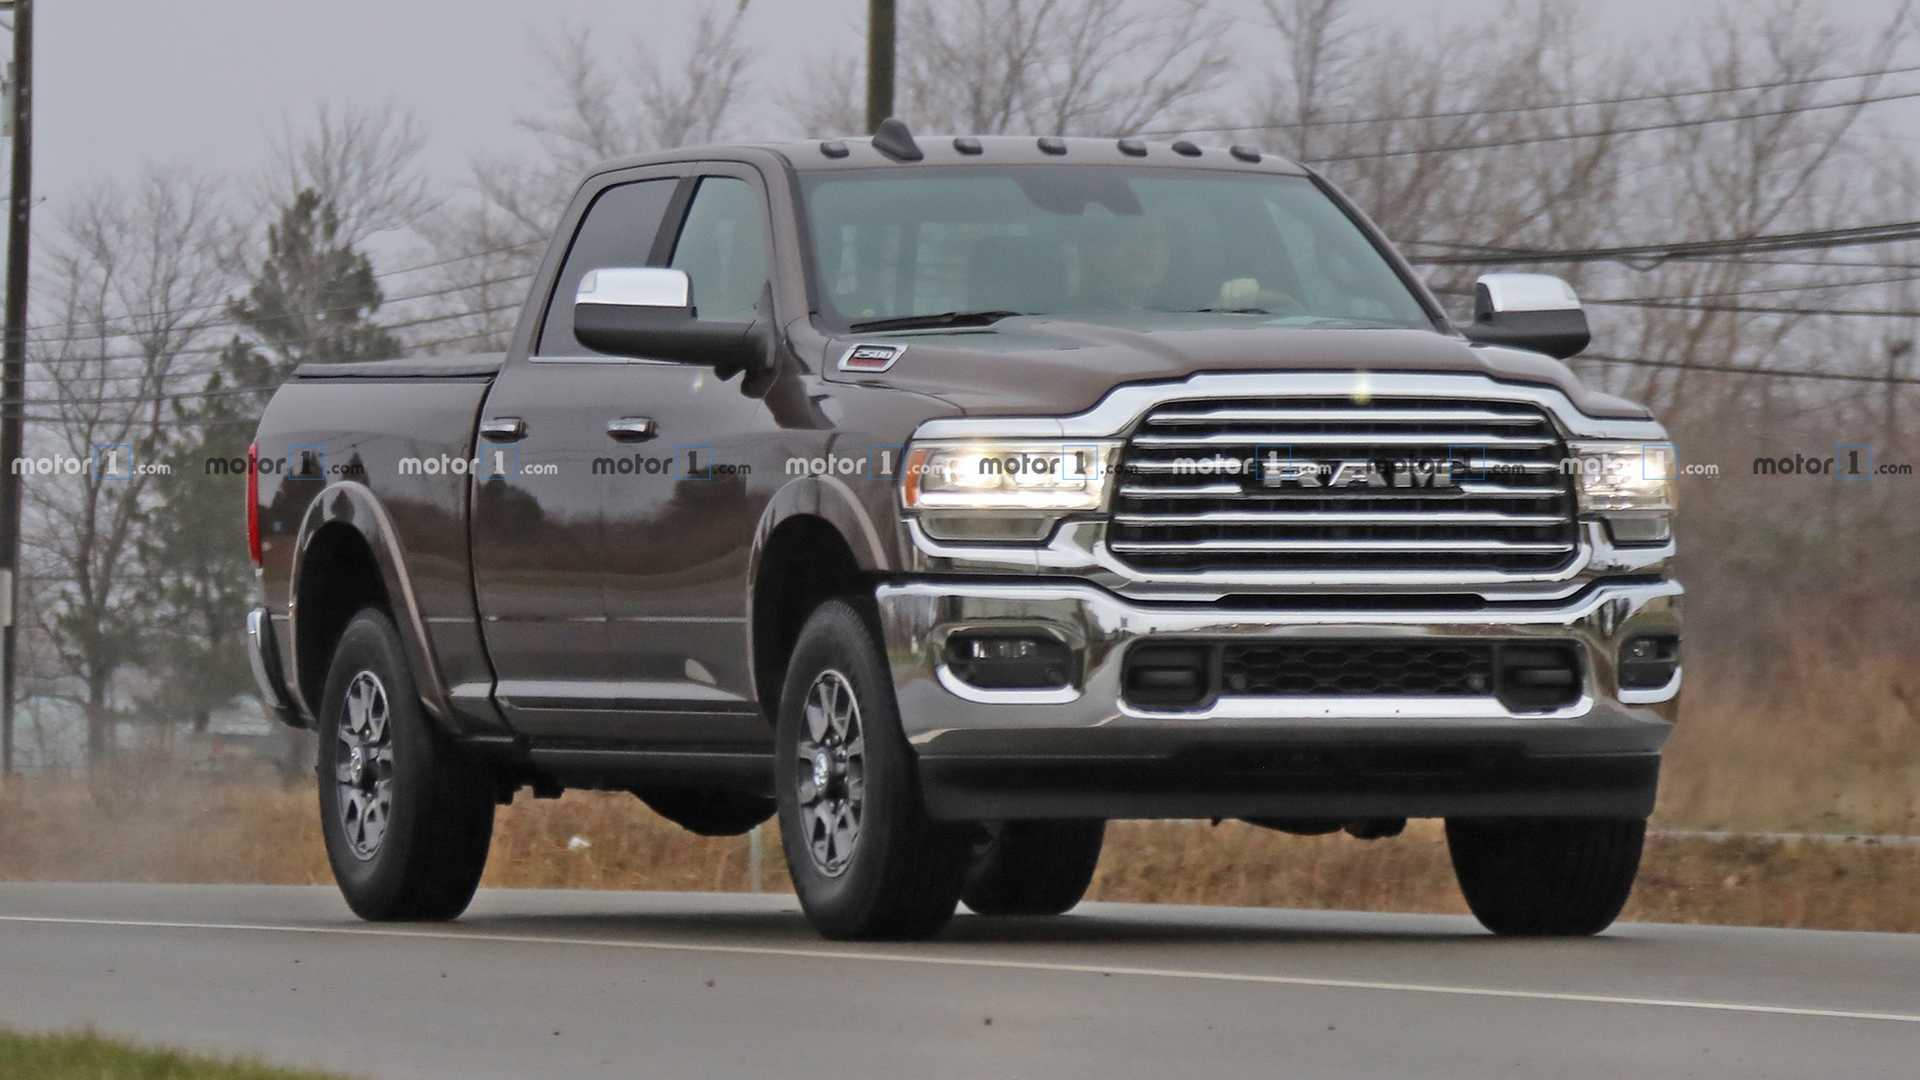 2020 Ram Power Wagon Cummins Engine, Interior, Release Date >> 2020 Ram Hd Interior Fully Revealed In Latest Spy Shots